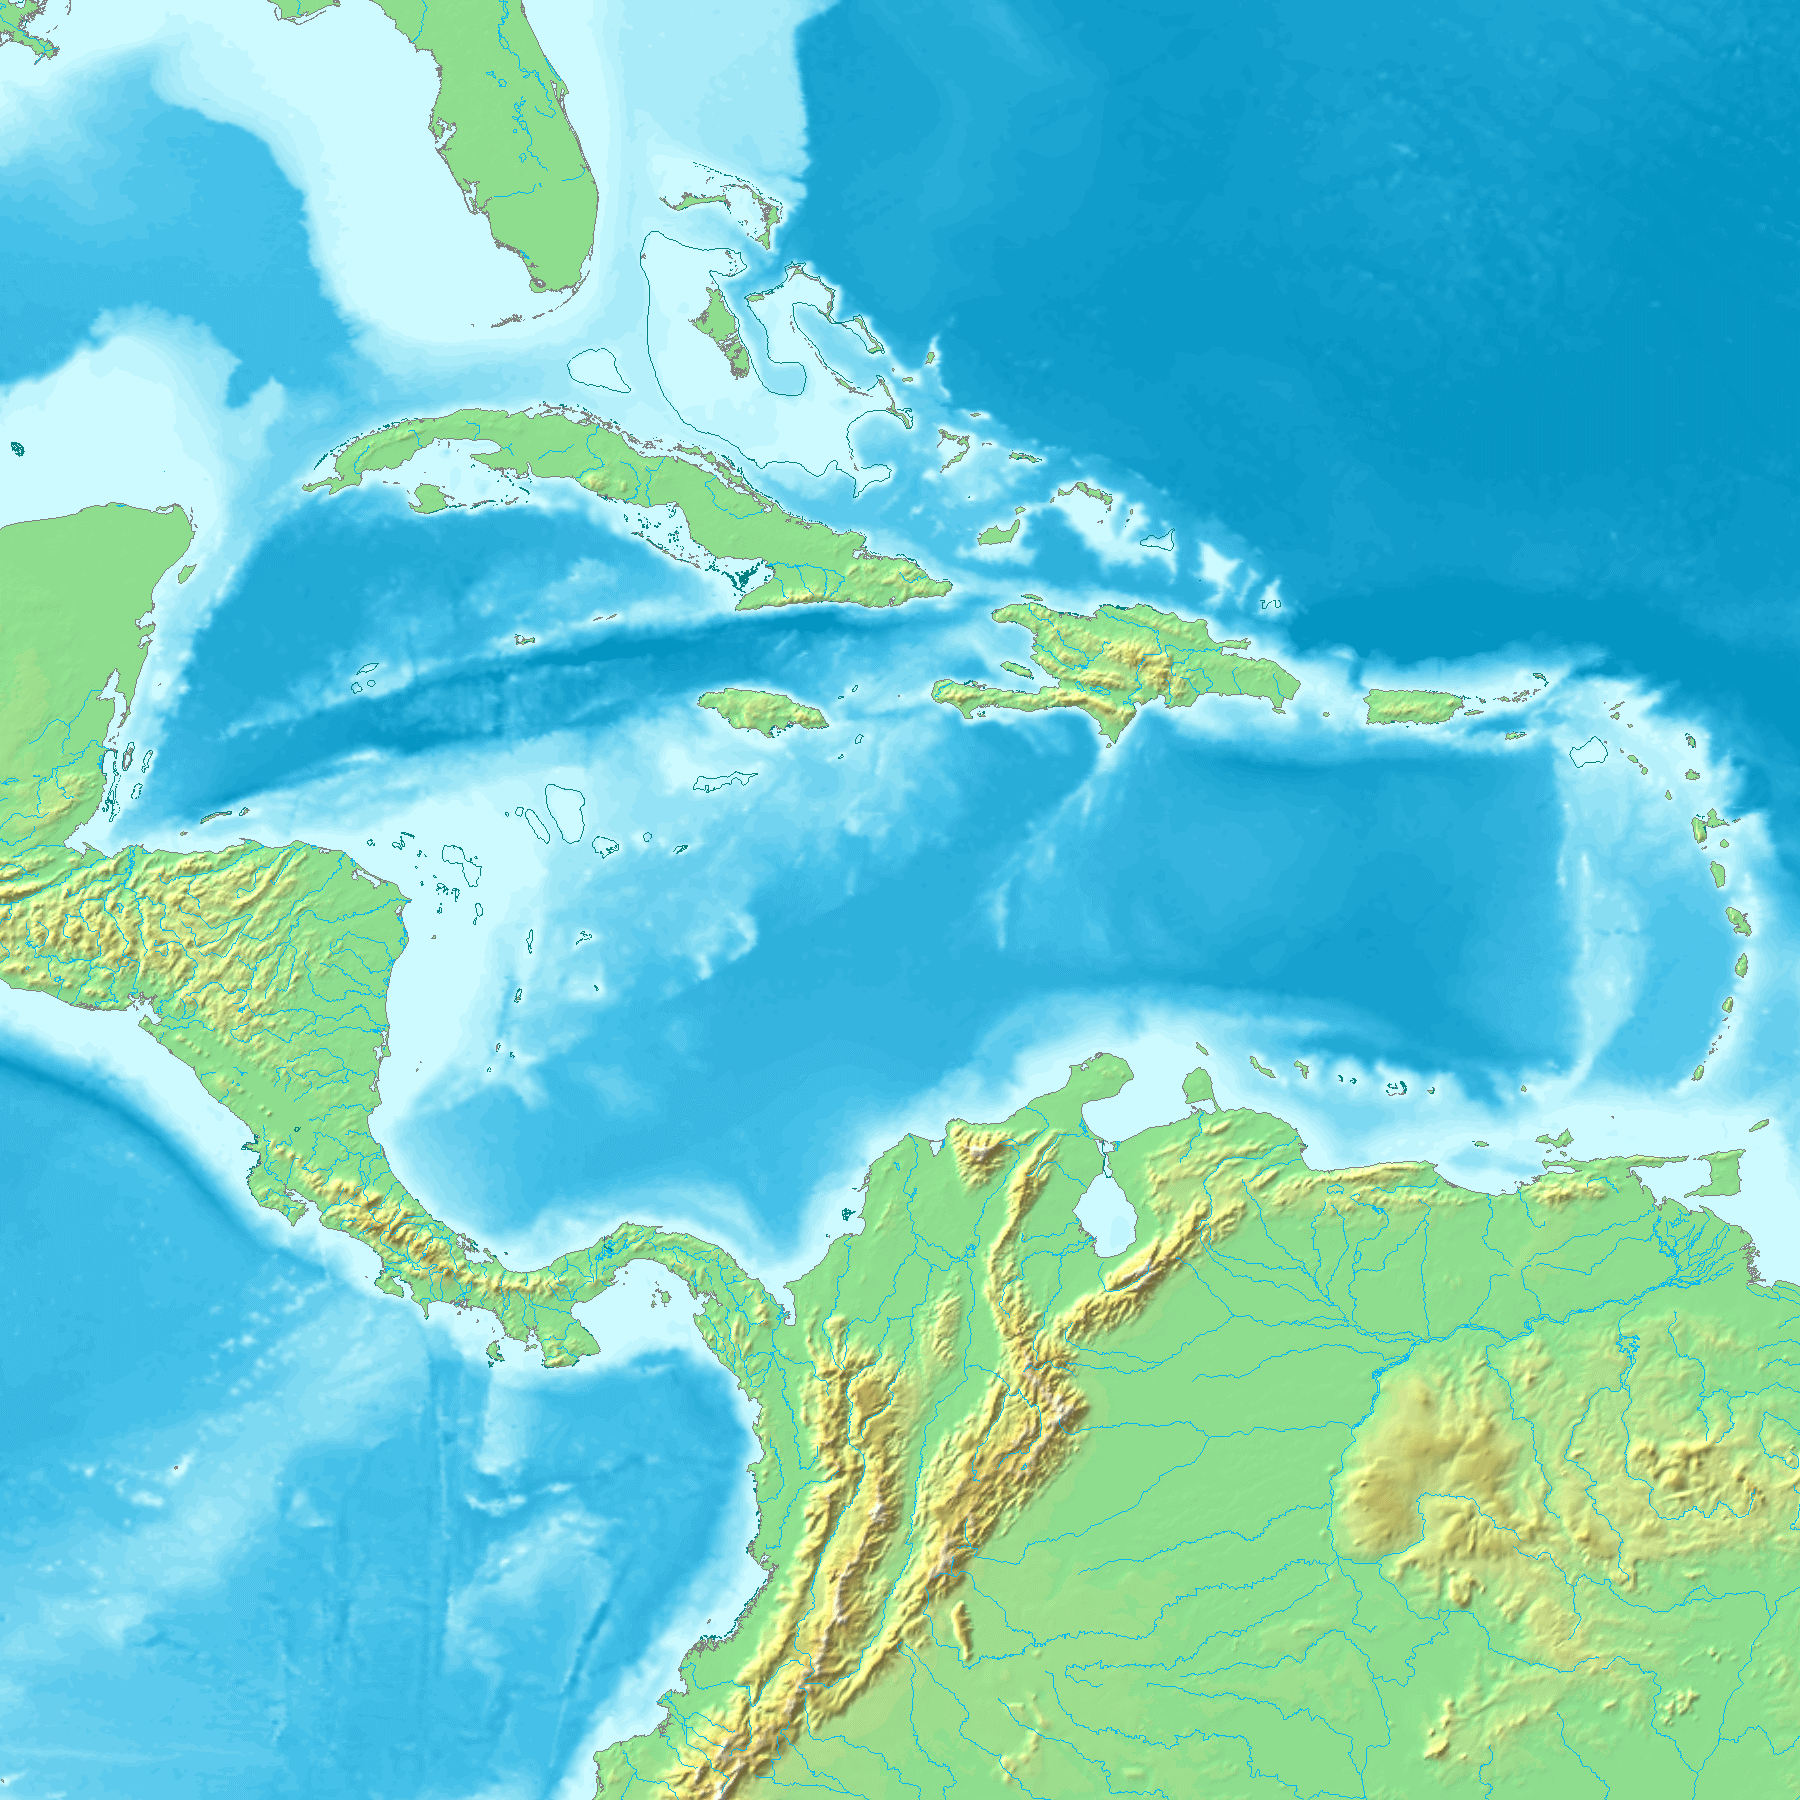 Topography and hydrography of the Caribbean 2005